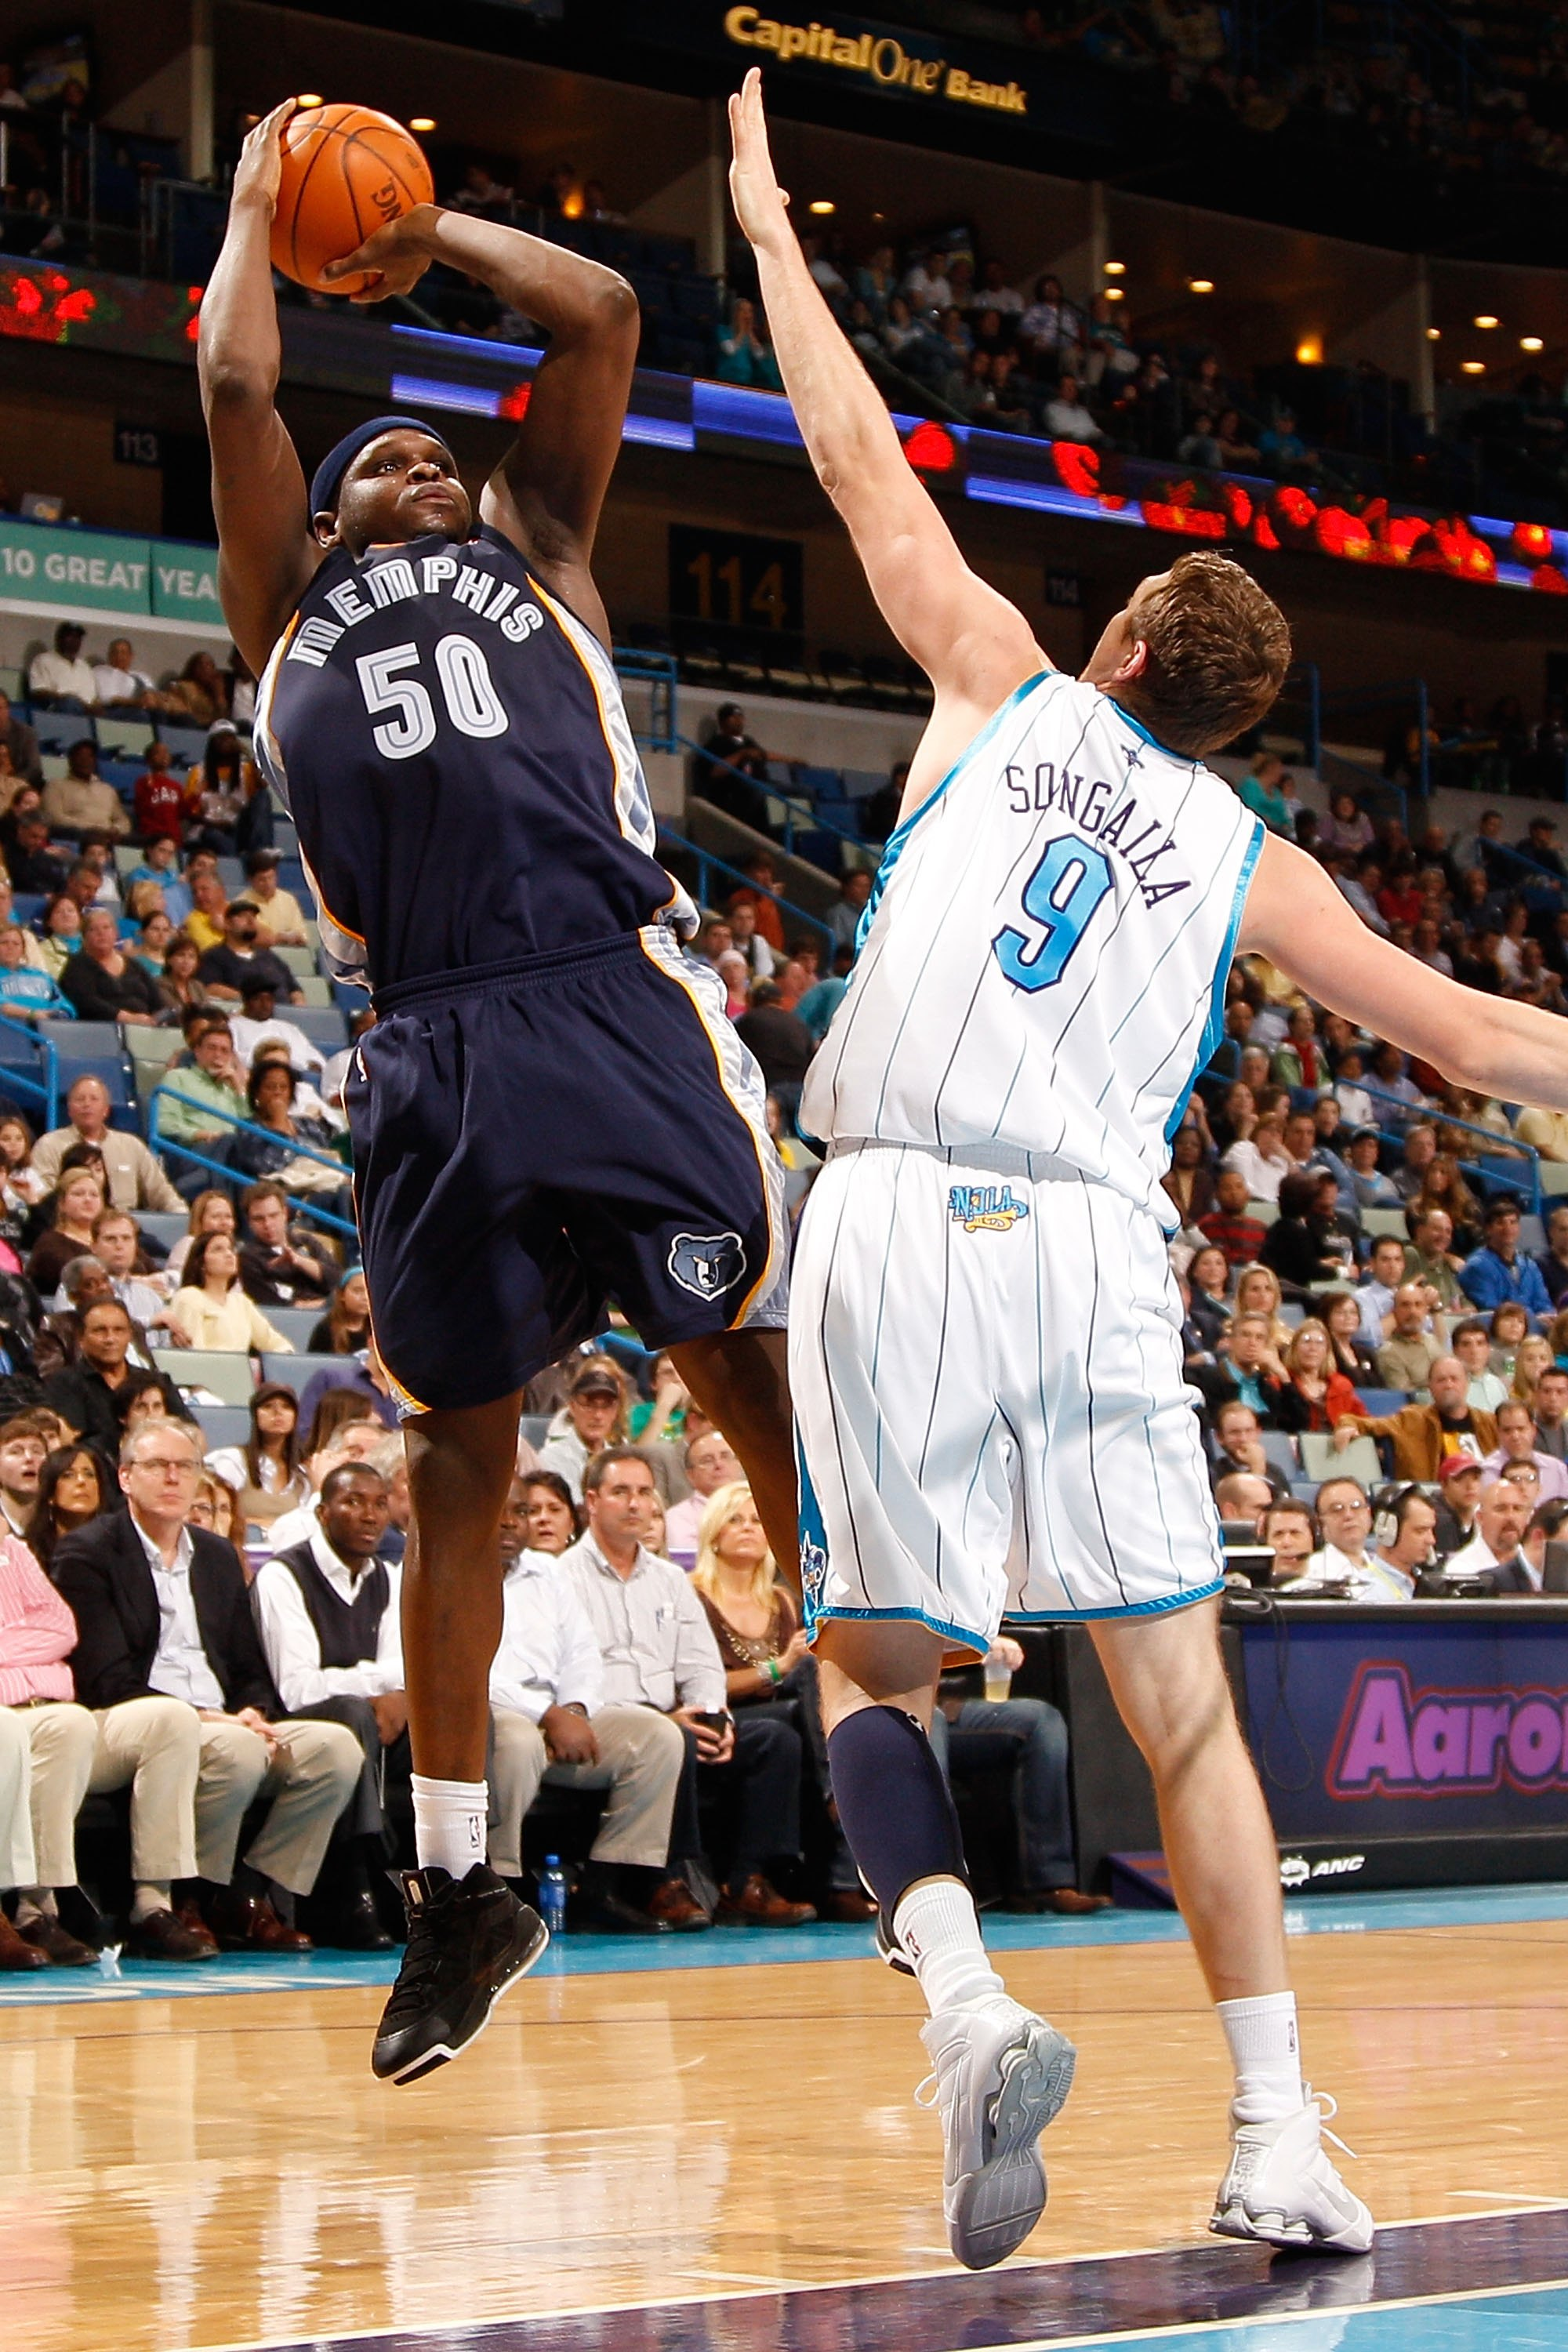 NEW ORLEANS - JANUARY 20:  Zach Randolph #50 of the Memphis Grizzlies shoots the ball over Darius Songaila #9 of the New Orleans Hornets at the New Orleans Arena on January 20, 2010 in New Orleans, Louisiana.  NOTE TO USER: User expressly acknowledges and